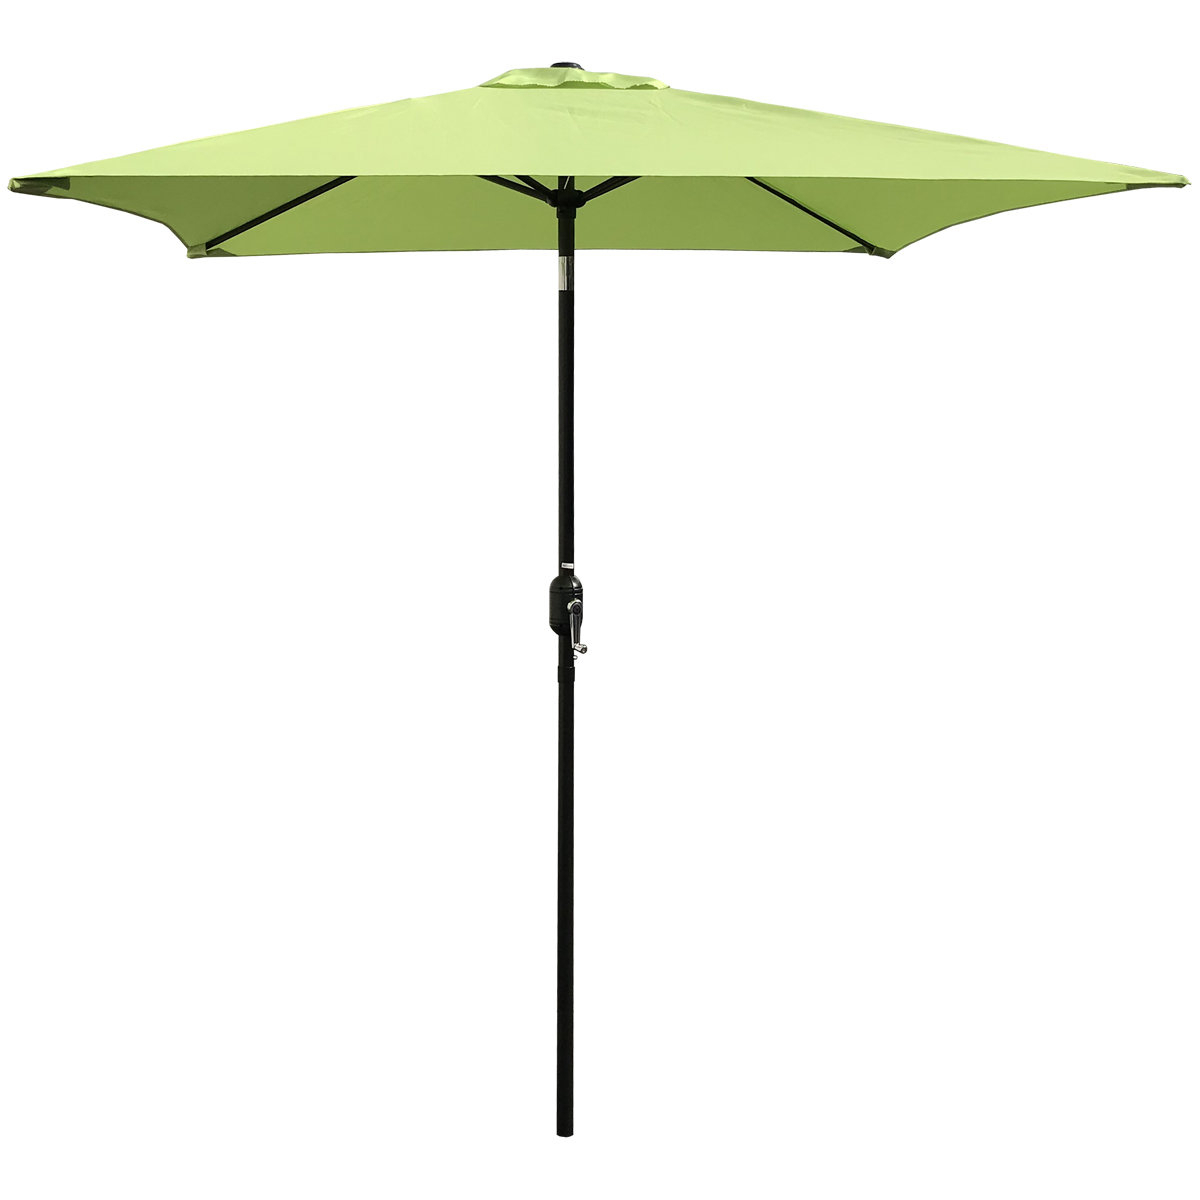 Launceston Market Umbrellas Intended For Well Known Bradford Patio 6.5' Square Market Umbrella (Gallery 10 of 20)